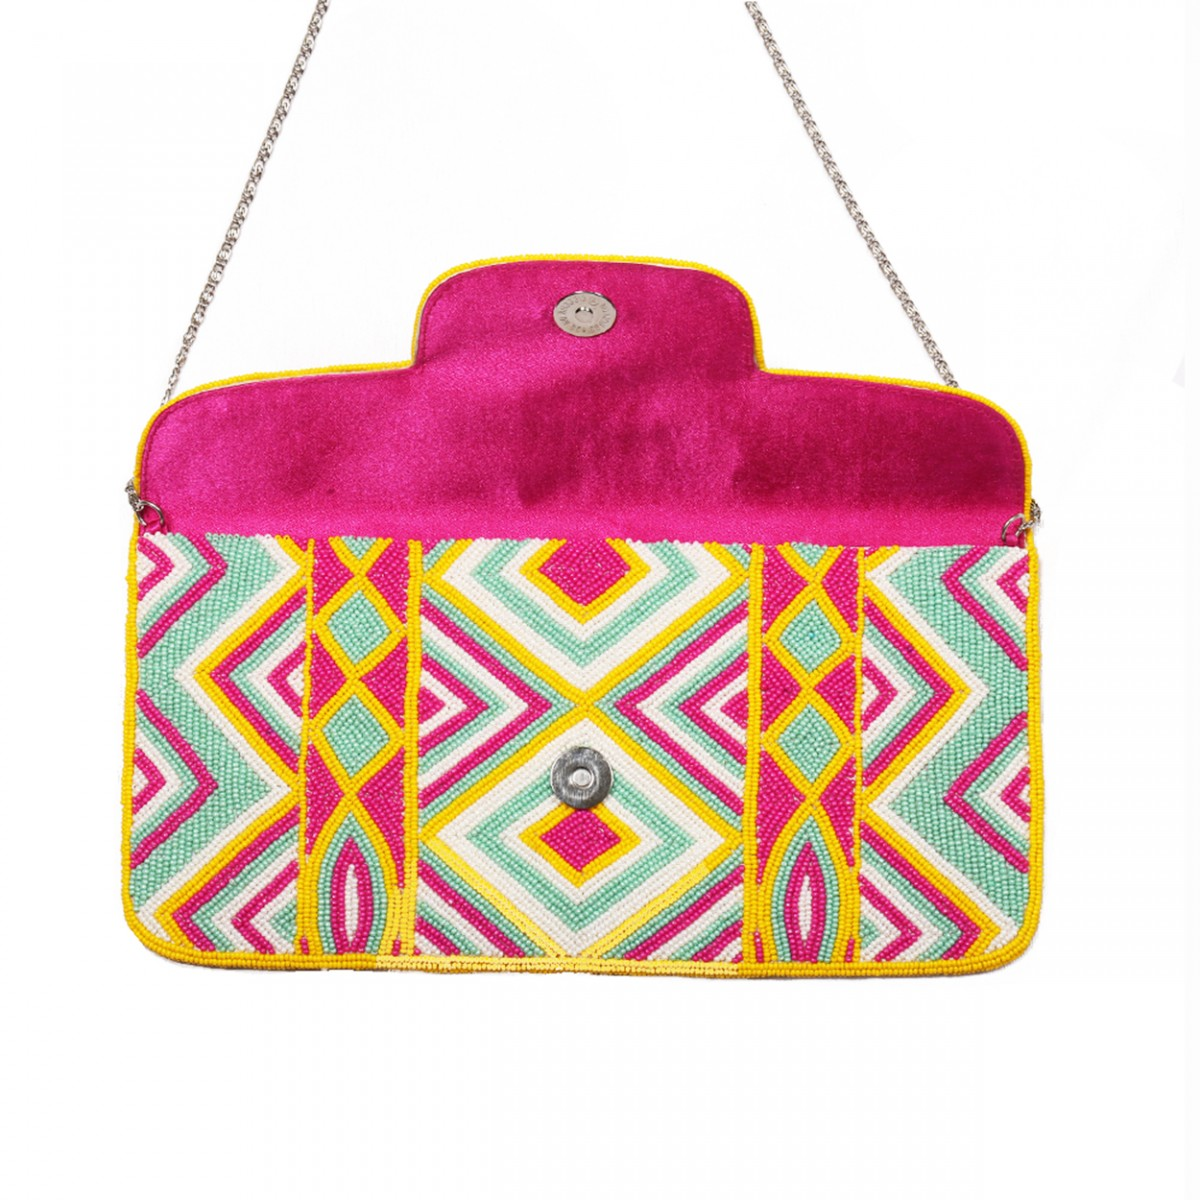 Beaded Envelop Evening Clutch Bag - Magenta